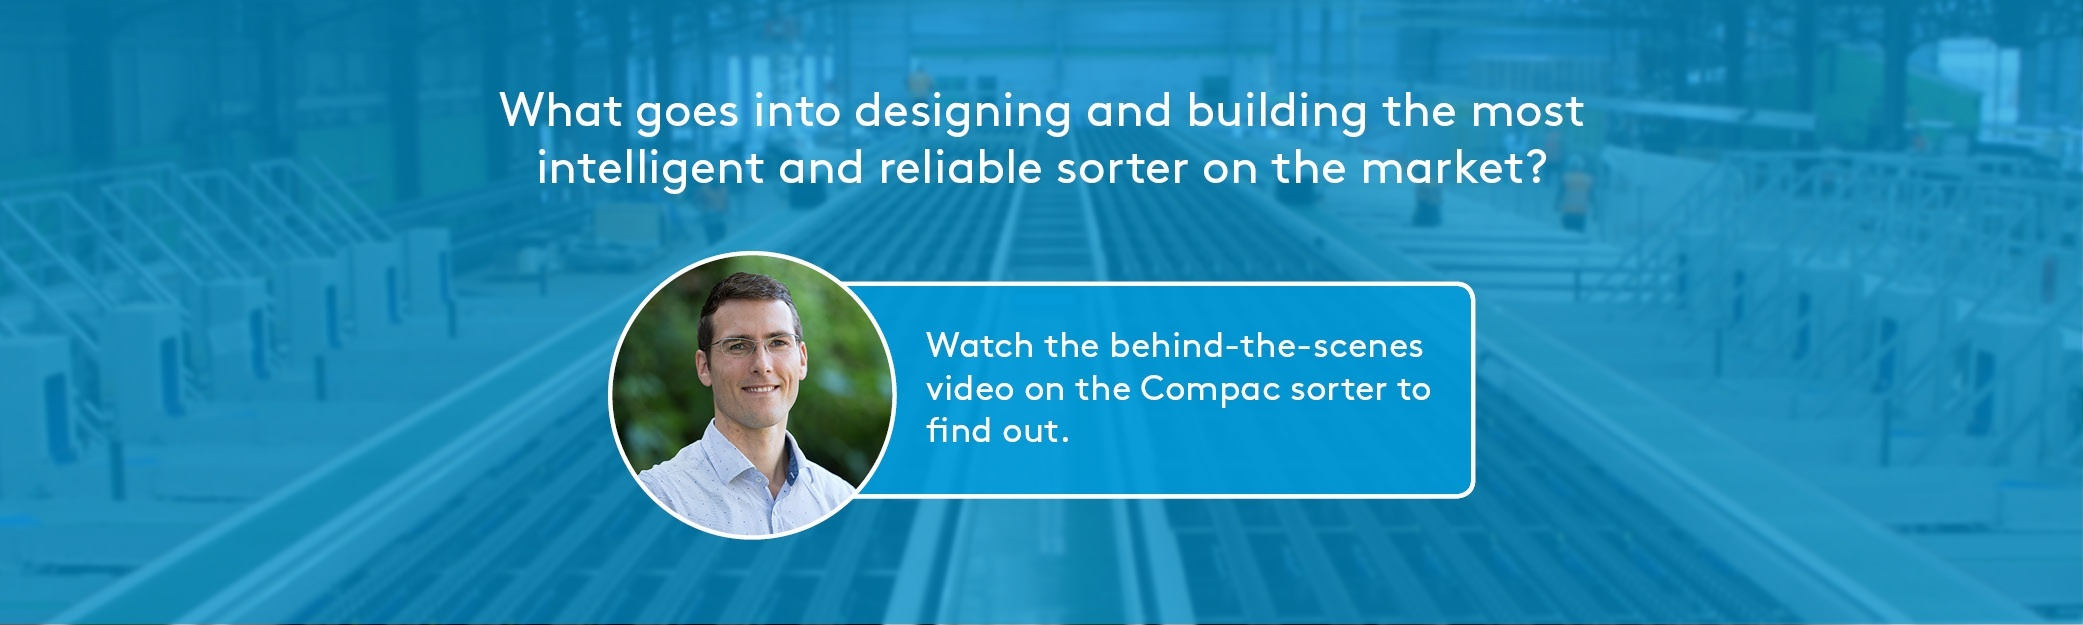 Watch Compac Sorter behind the scenes